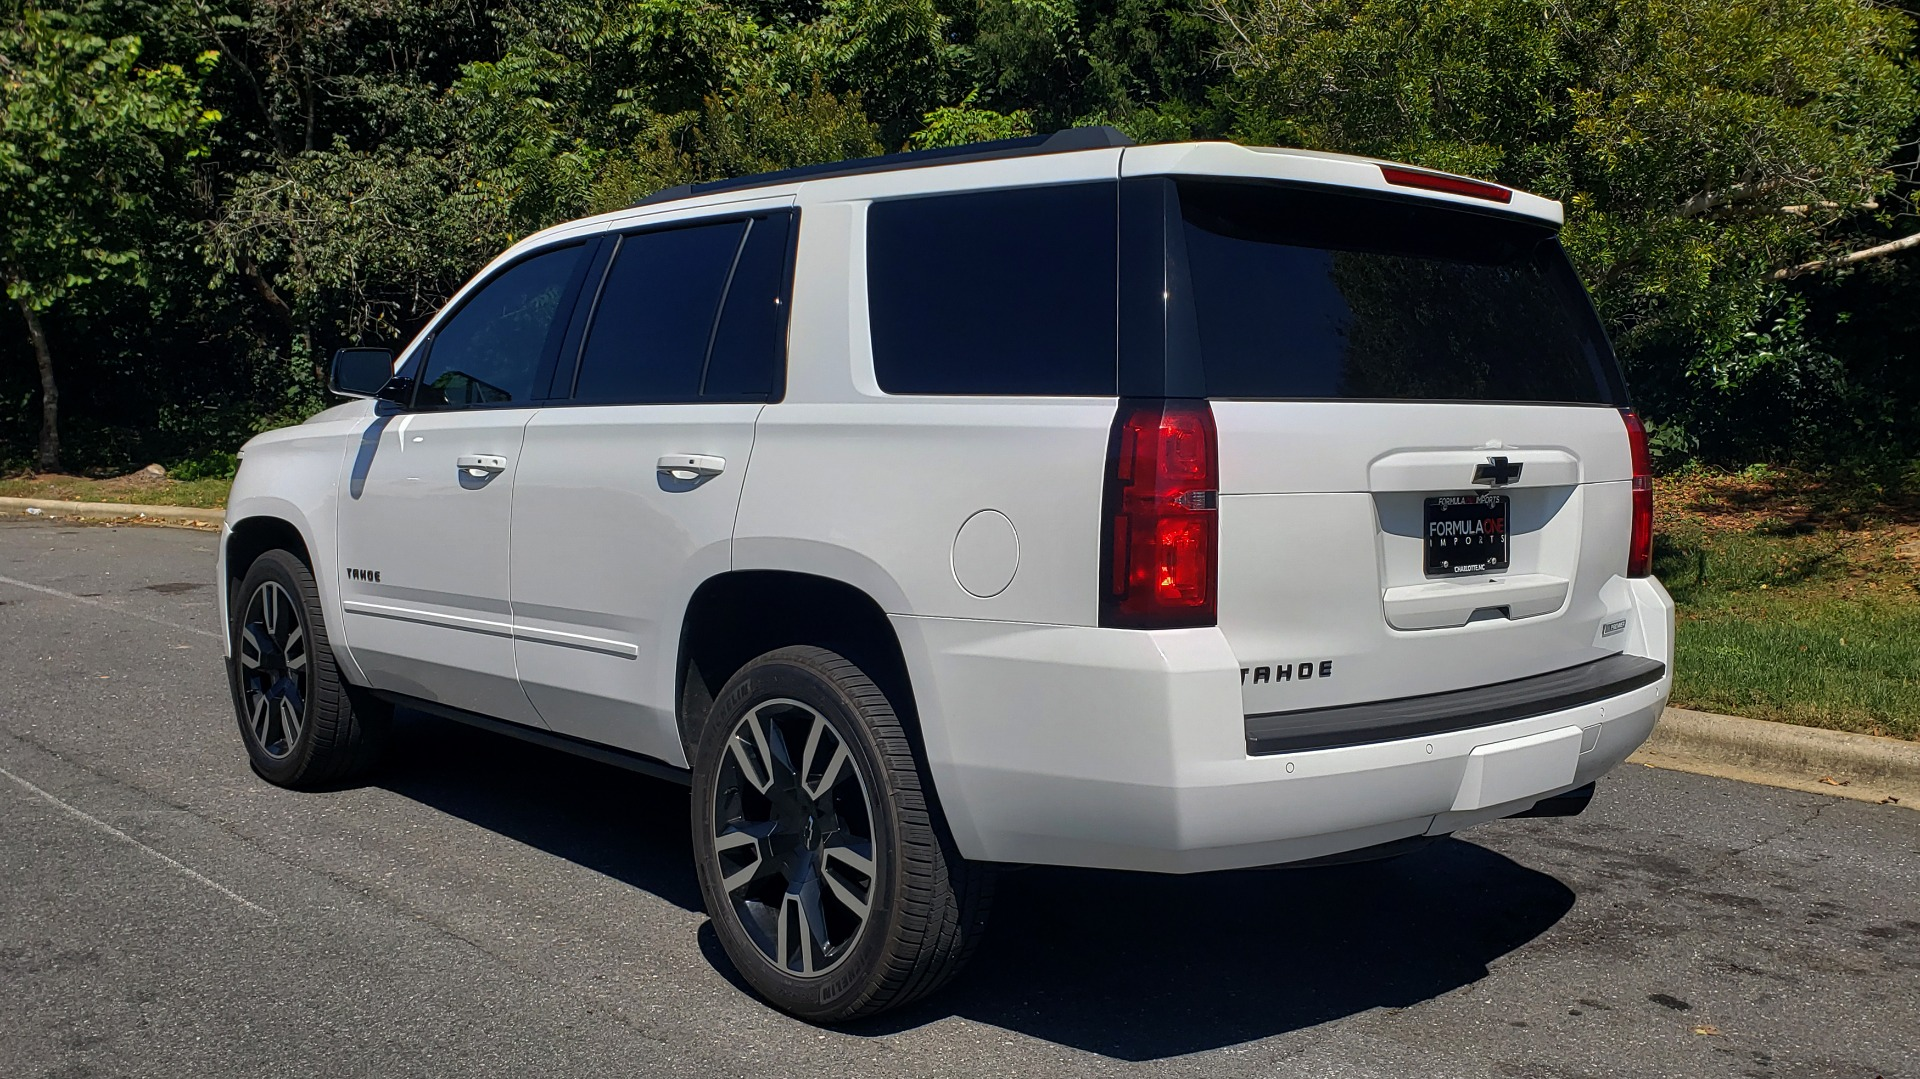 Used 2018 Chevrolet TAHOE PREMIER 4WD / 6.2L V8 / NAV / SUNROOF / ENT / BOSE / 3-ROW / REARVIEW for sale Sold at Formula Imports in Charlotte NC 28227 5